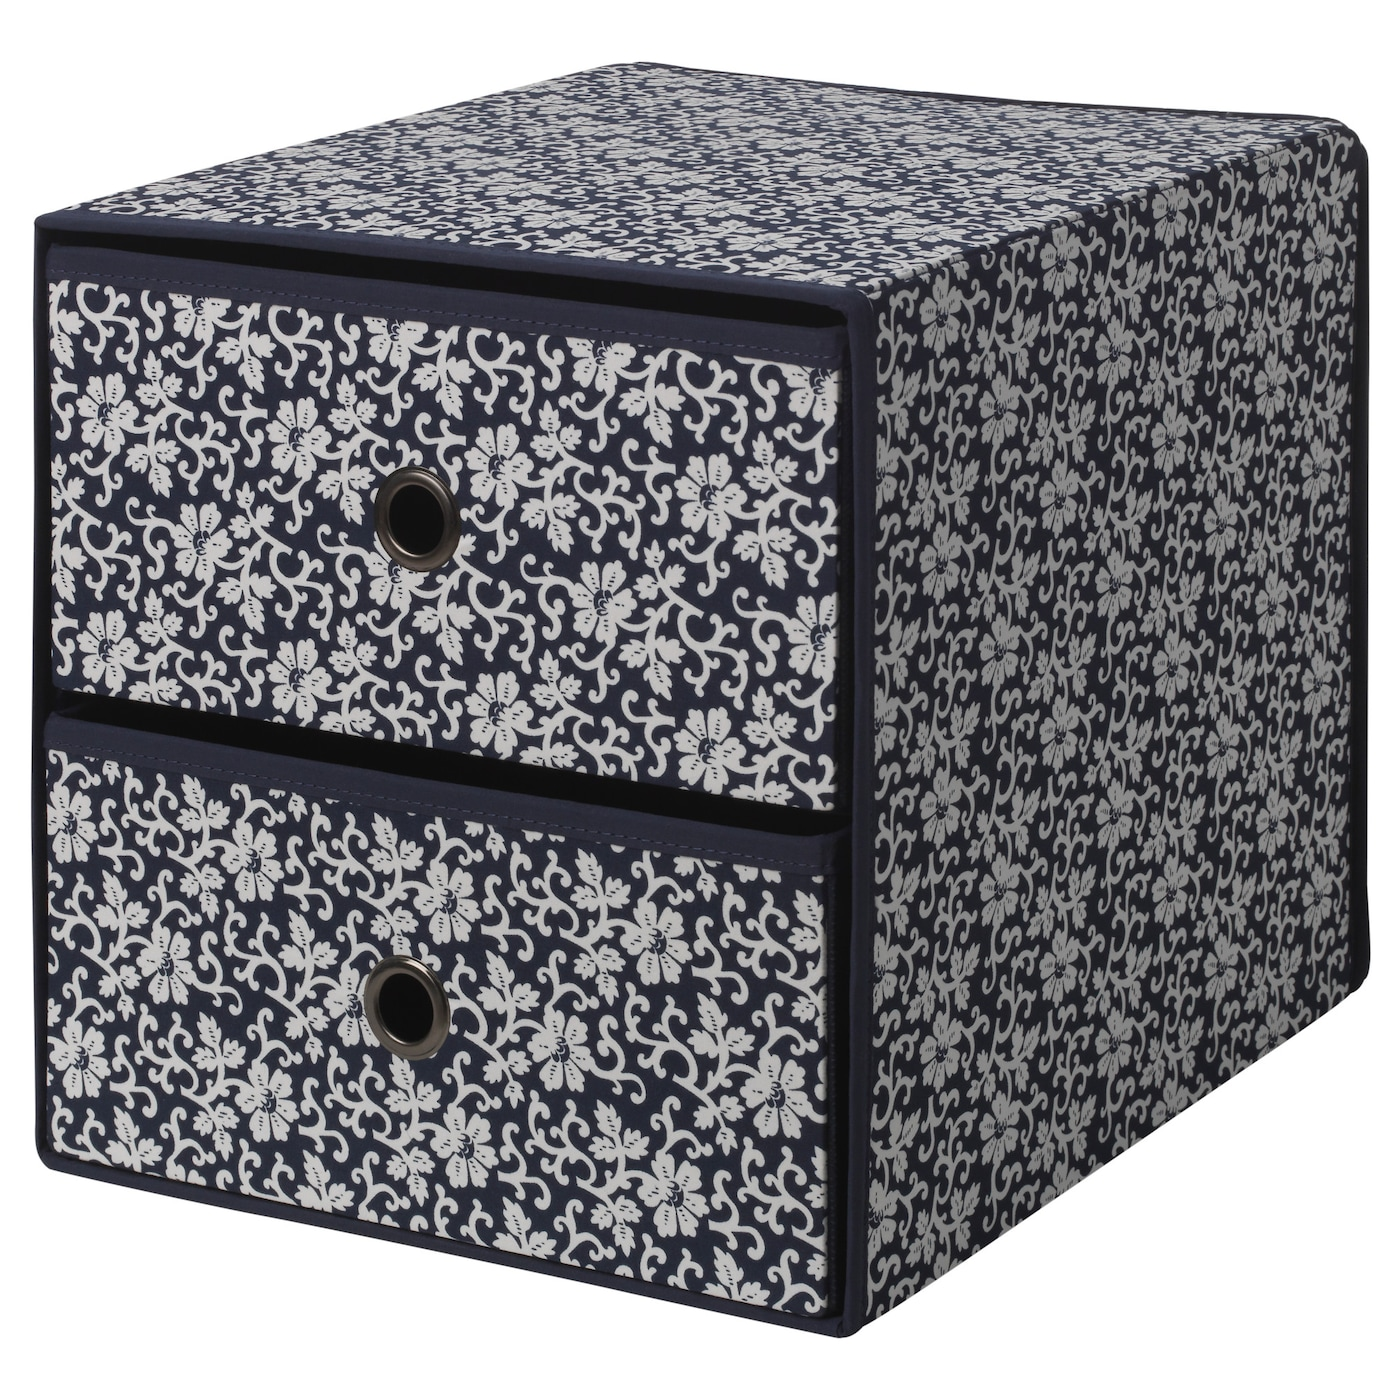 flarra mini commode 2 tiroirs bleu motif floral 33x38 cm ikea. Black Bedroom Furniture Sets. Home Design Ideas